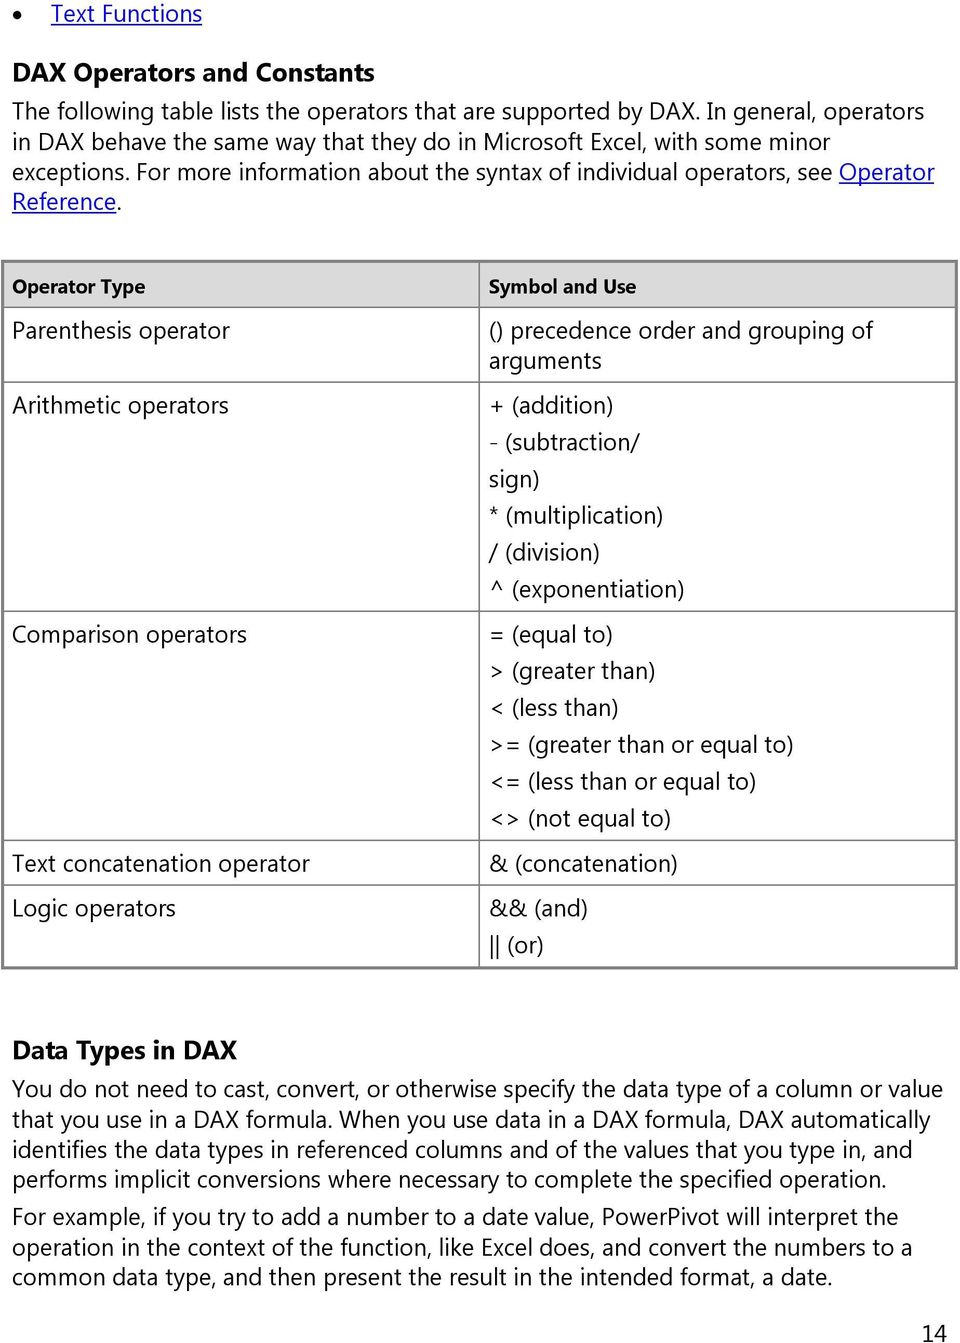 Data Analysis Expressions (DAX) Reference - PDF